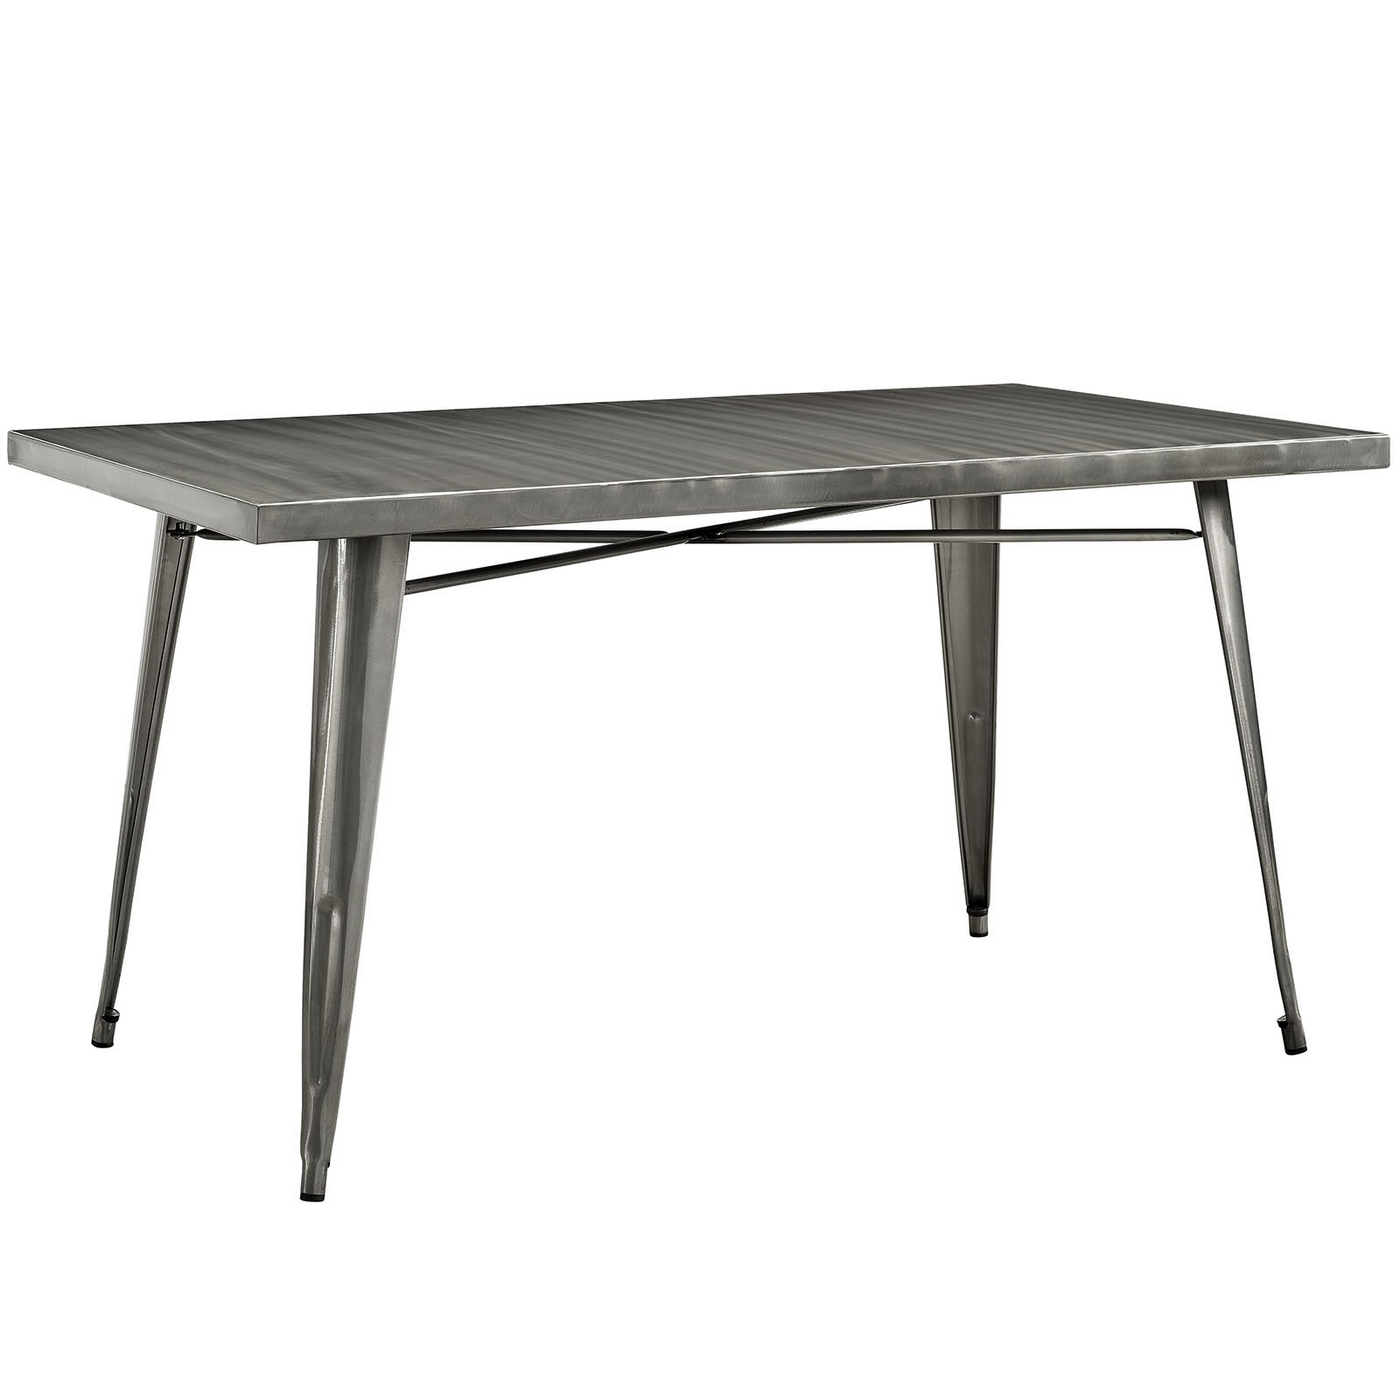 Alacrity modern vintage 60 steel dining table with for Dining table finish